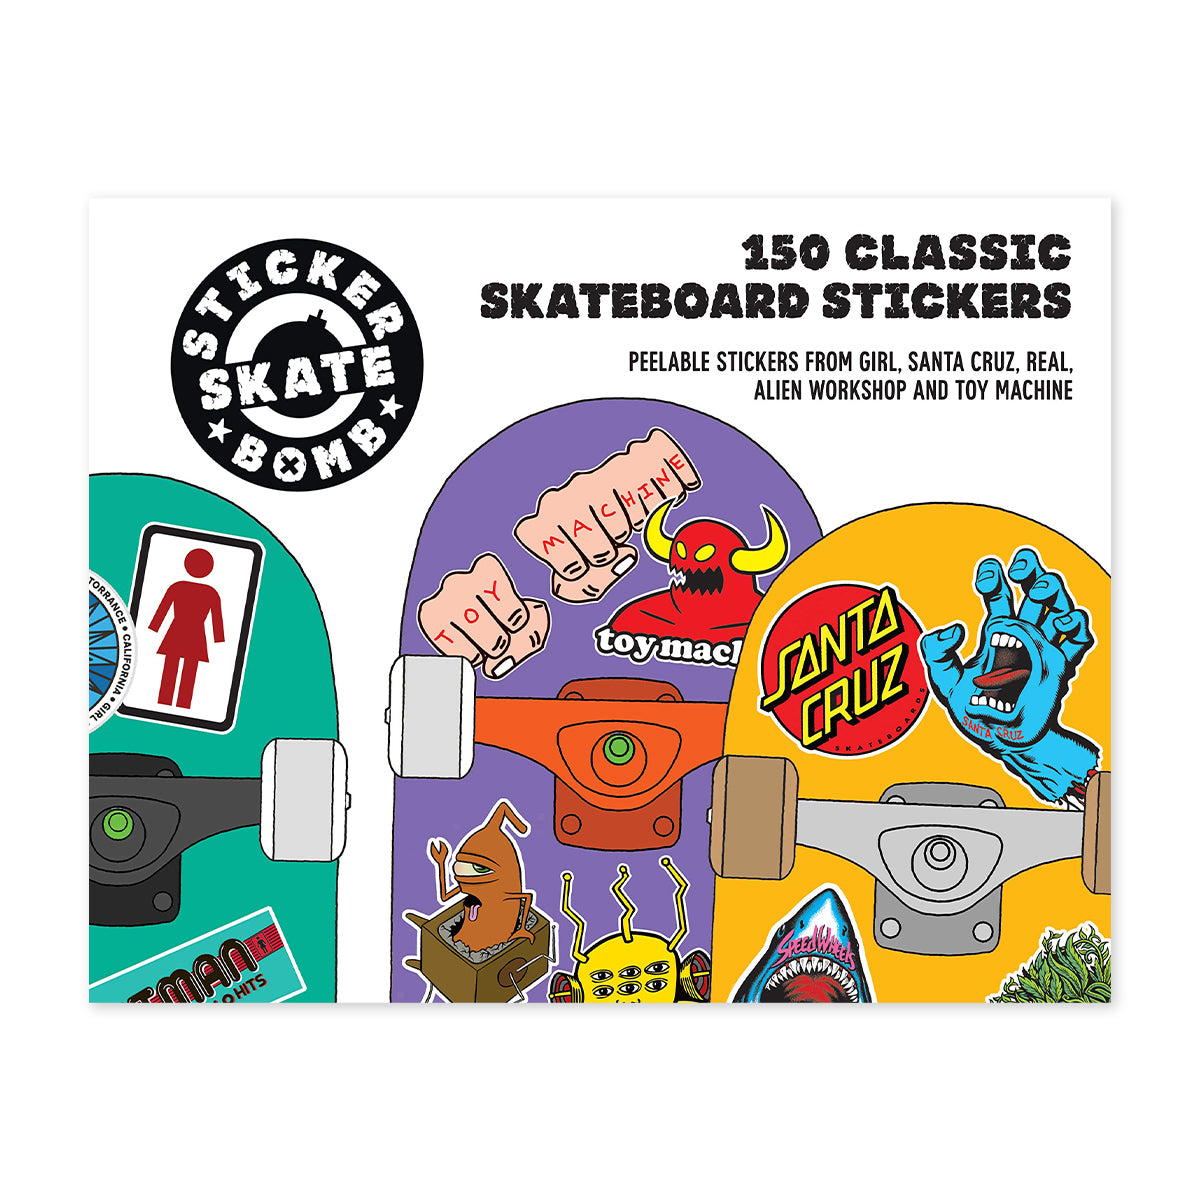 Stickerbomb Skateboard: 150 Classic Skateboard Stickers